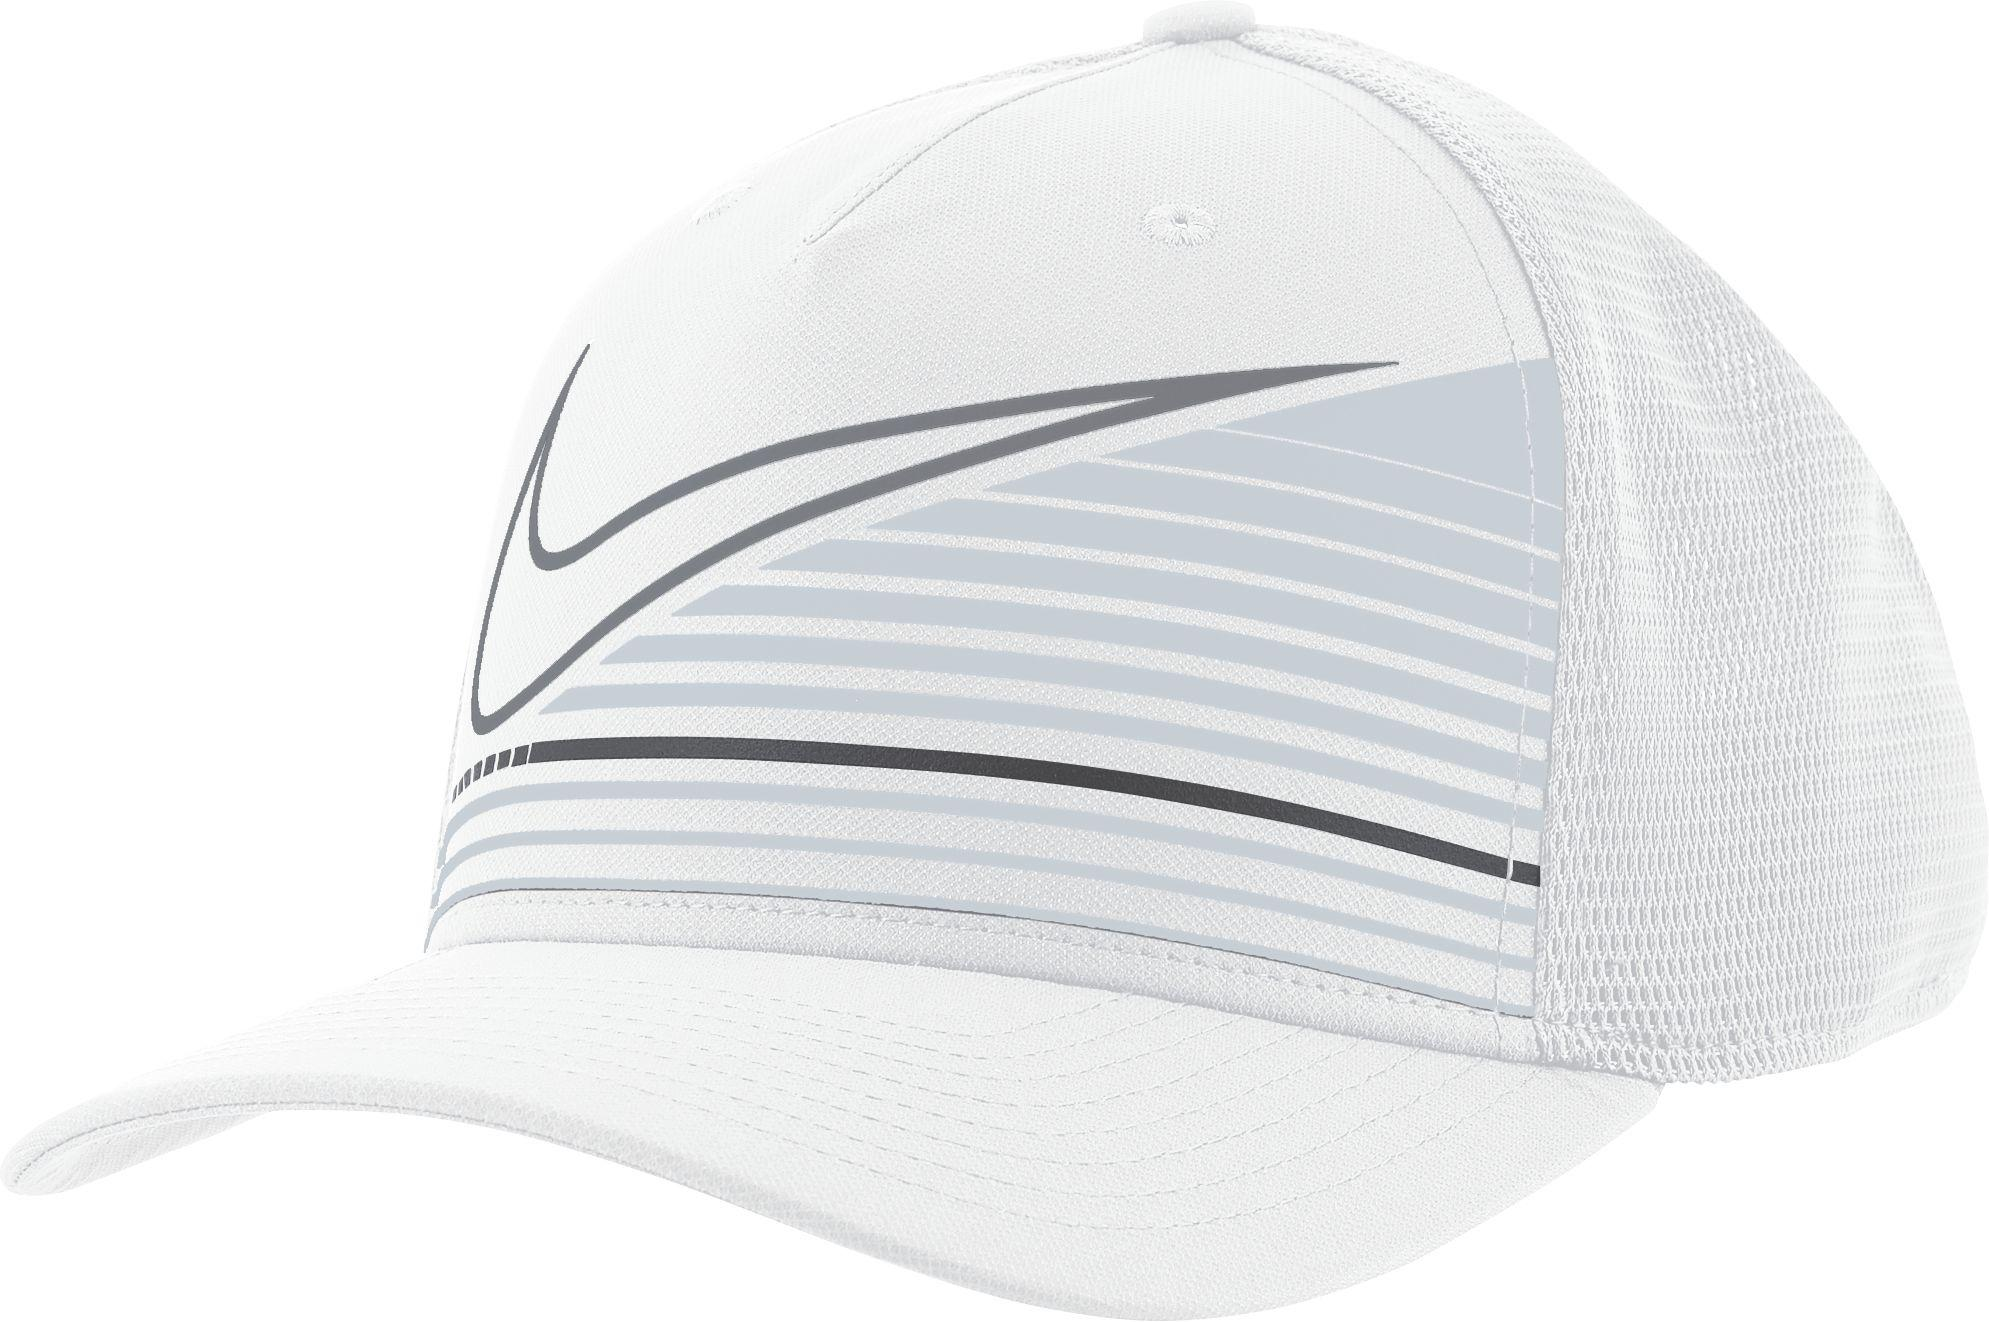 adf192bc2b818 Lyst - Nike Classic99 Print Golf Hat in White for Men